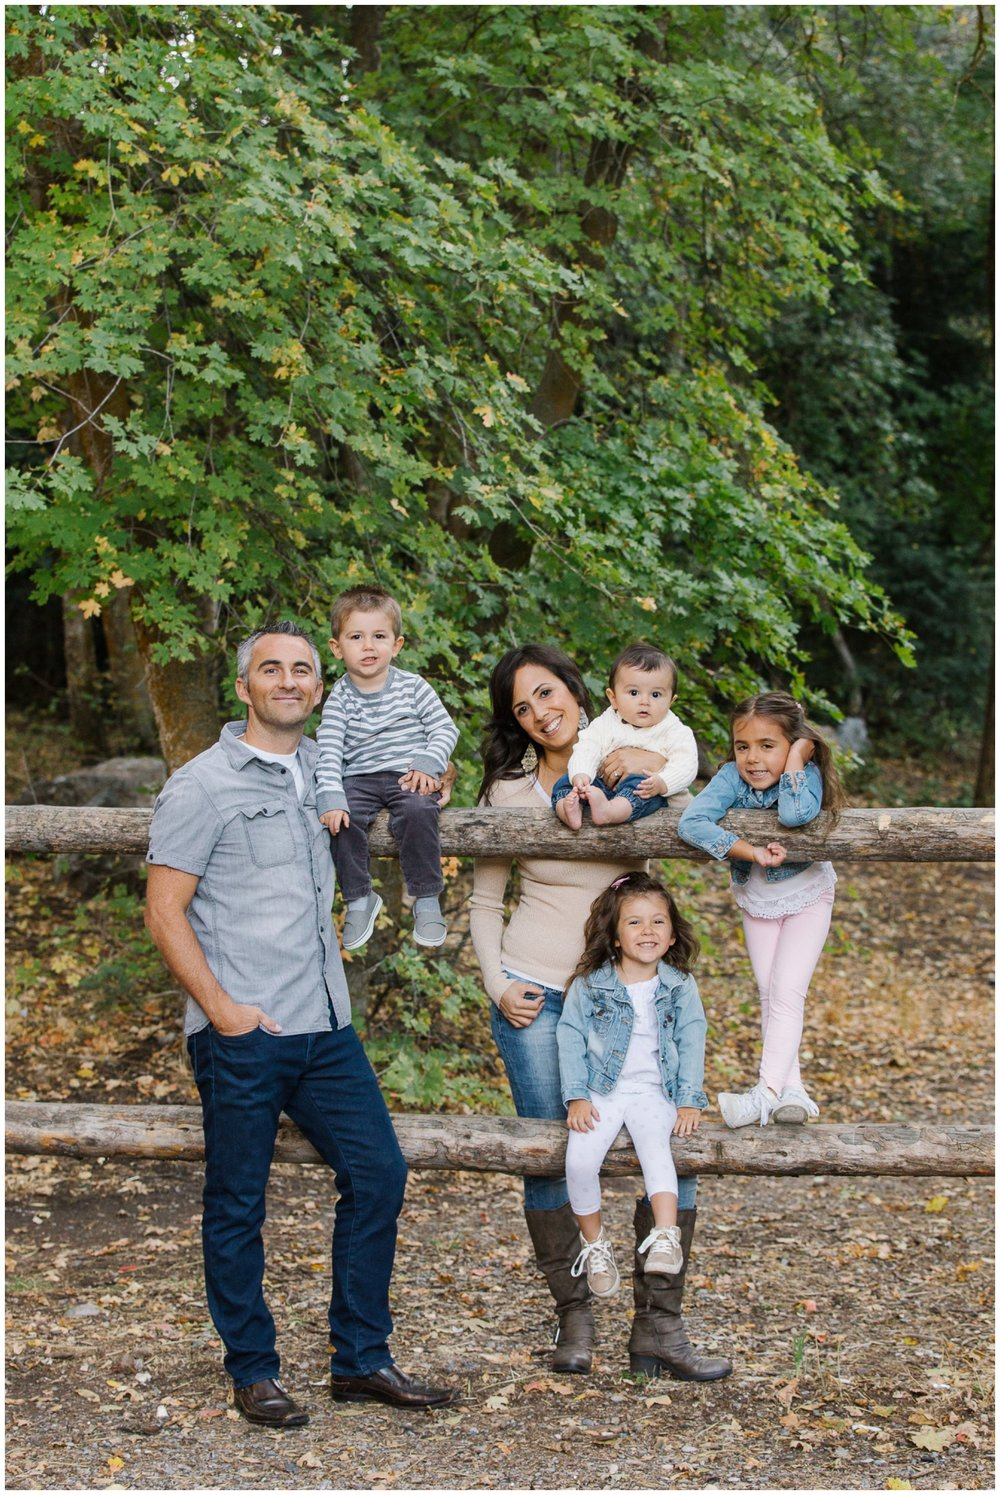 Jamie Tervort Photography | Haskell Family | Utah Family Photography | Fall pictures